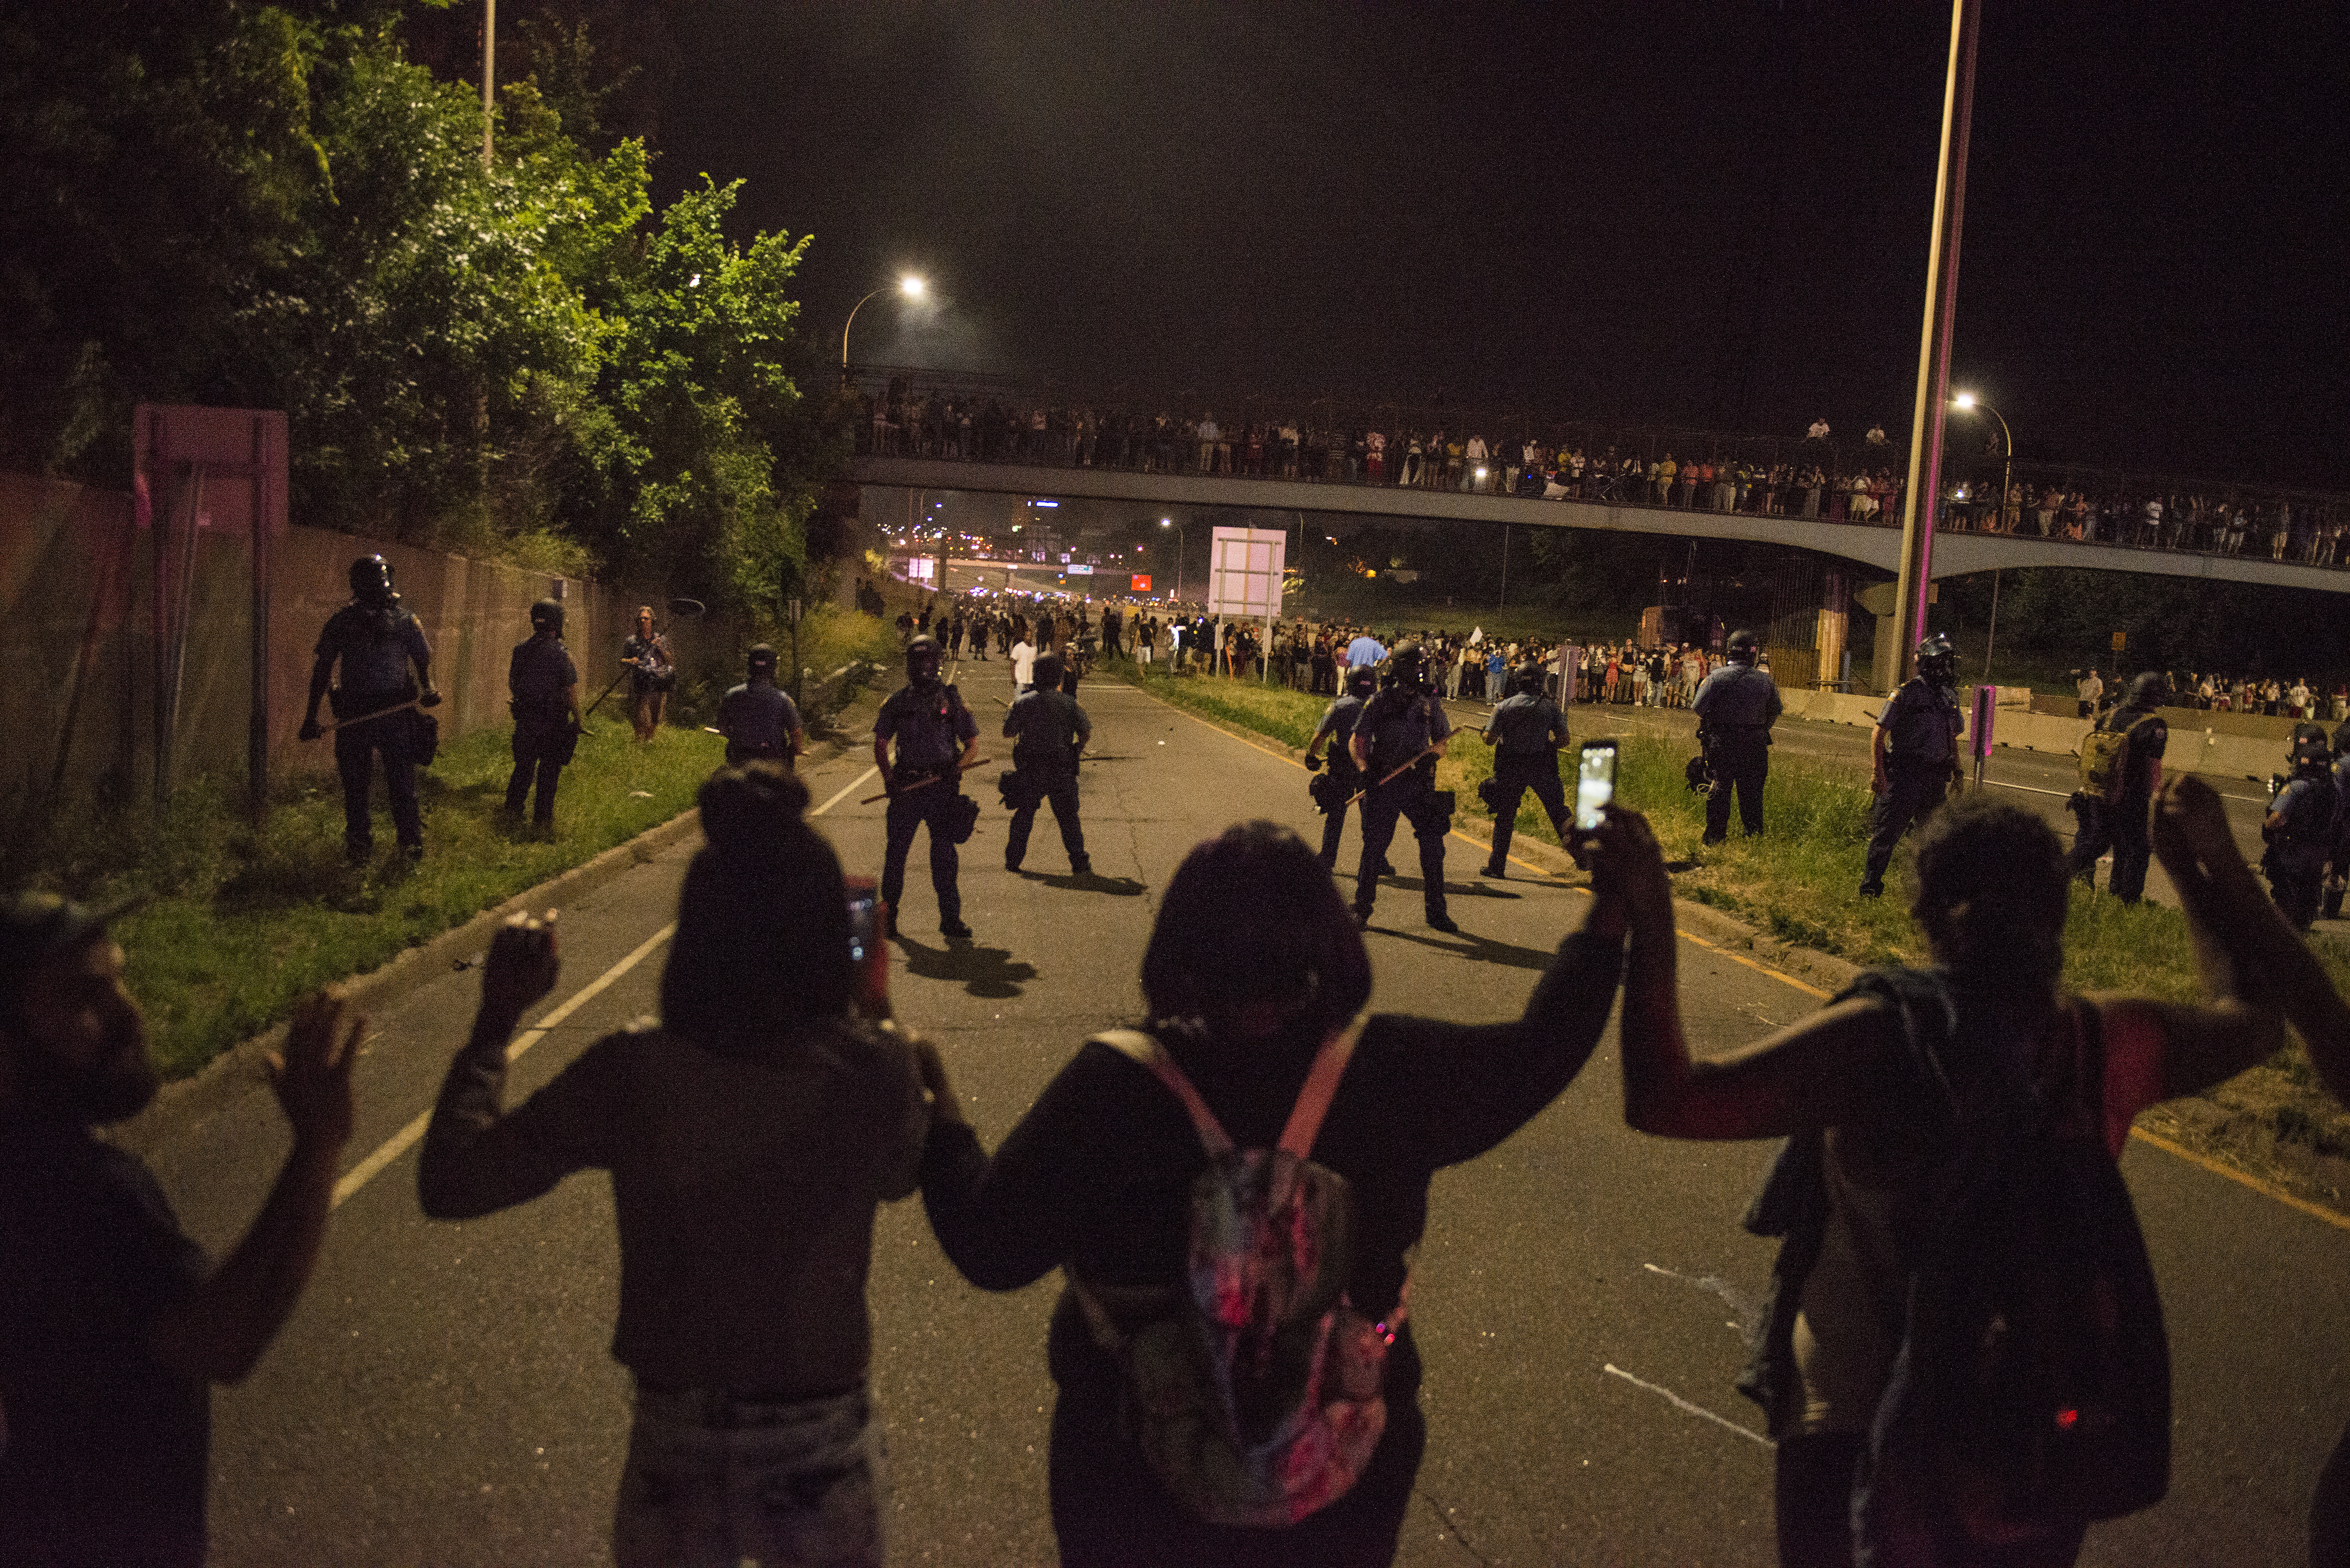 Protesters link hands on shut down highway I-94 on July 9, 2016 in St. Paul, Minnesota, in response to the police killing of Philando Castile on June 6, 2016 in Falcon Heights, Minnesota.